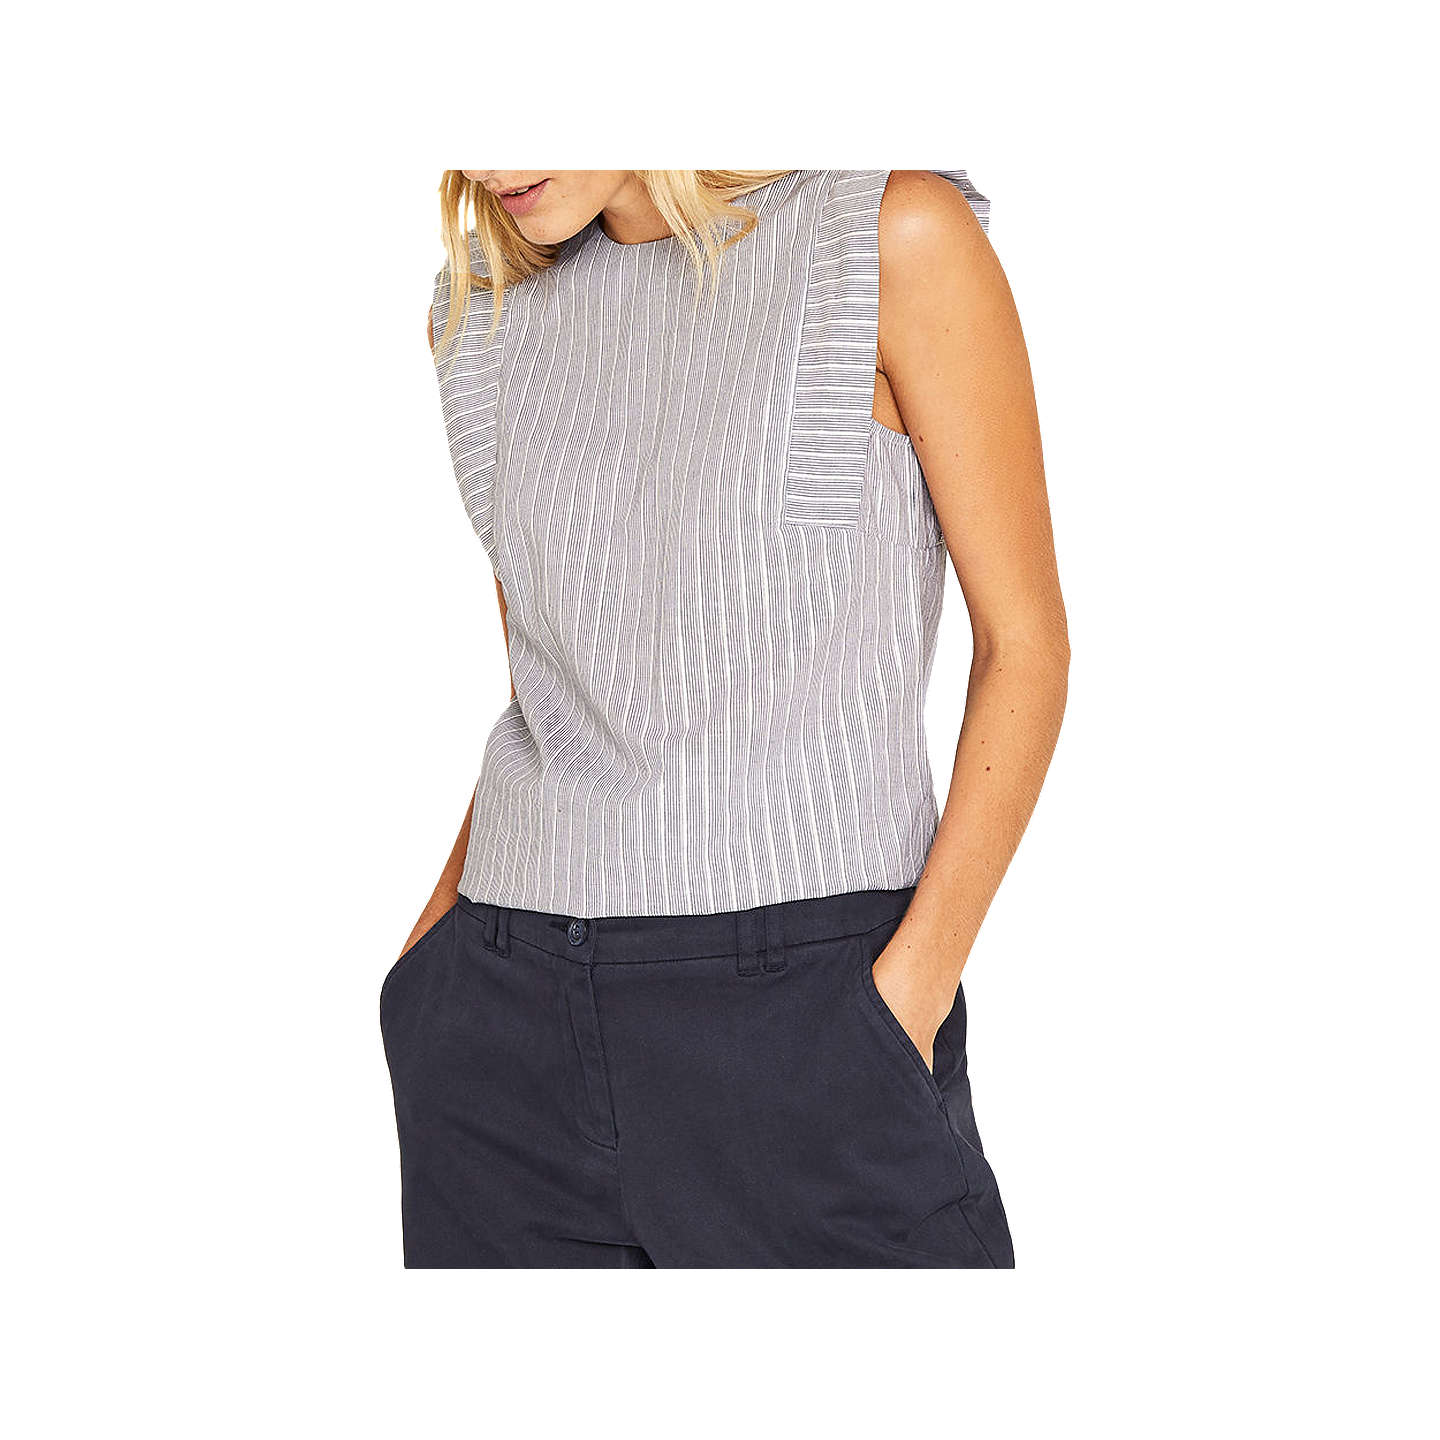 BuyOasis Ticking Stripe Angel Sleeve Top, Multi/Blue, 6 Online at johnlewis.com